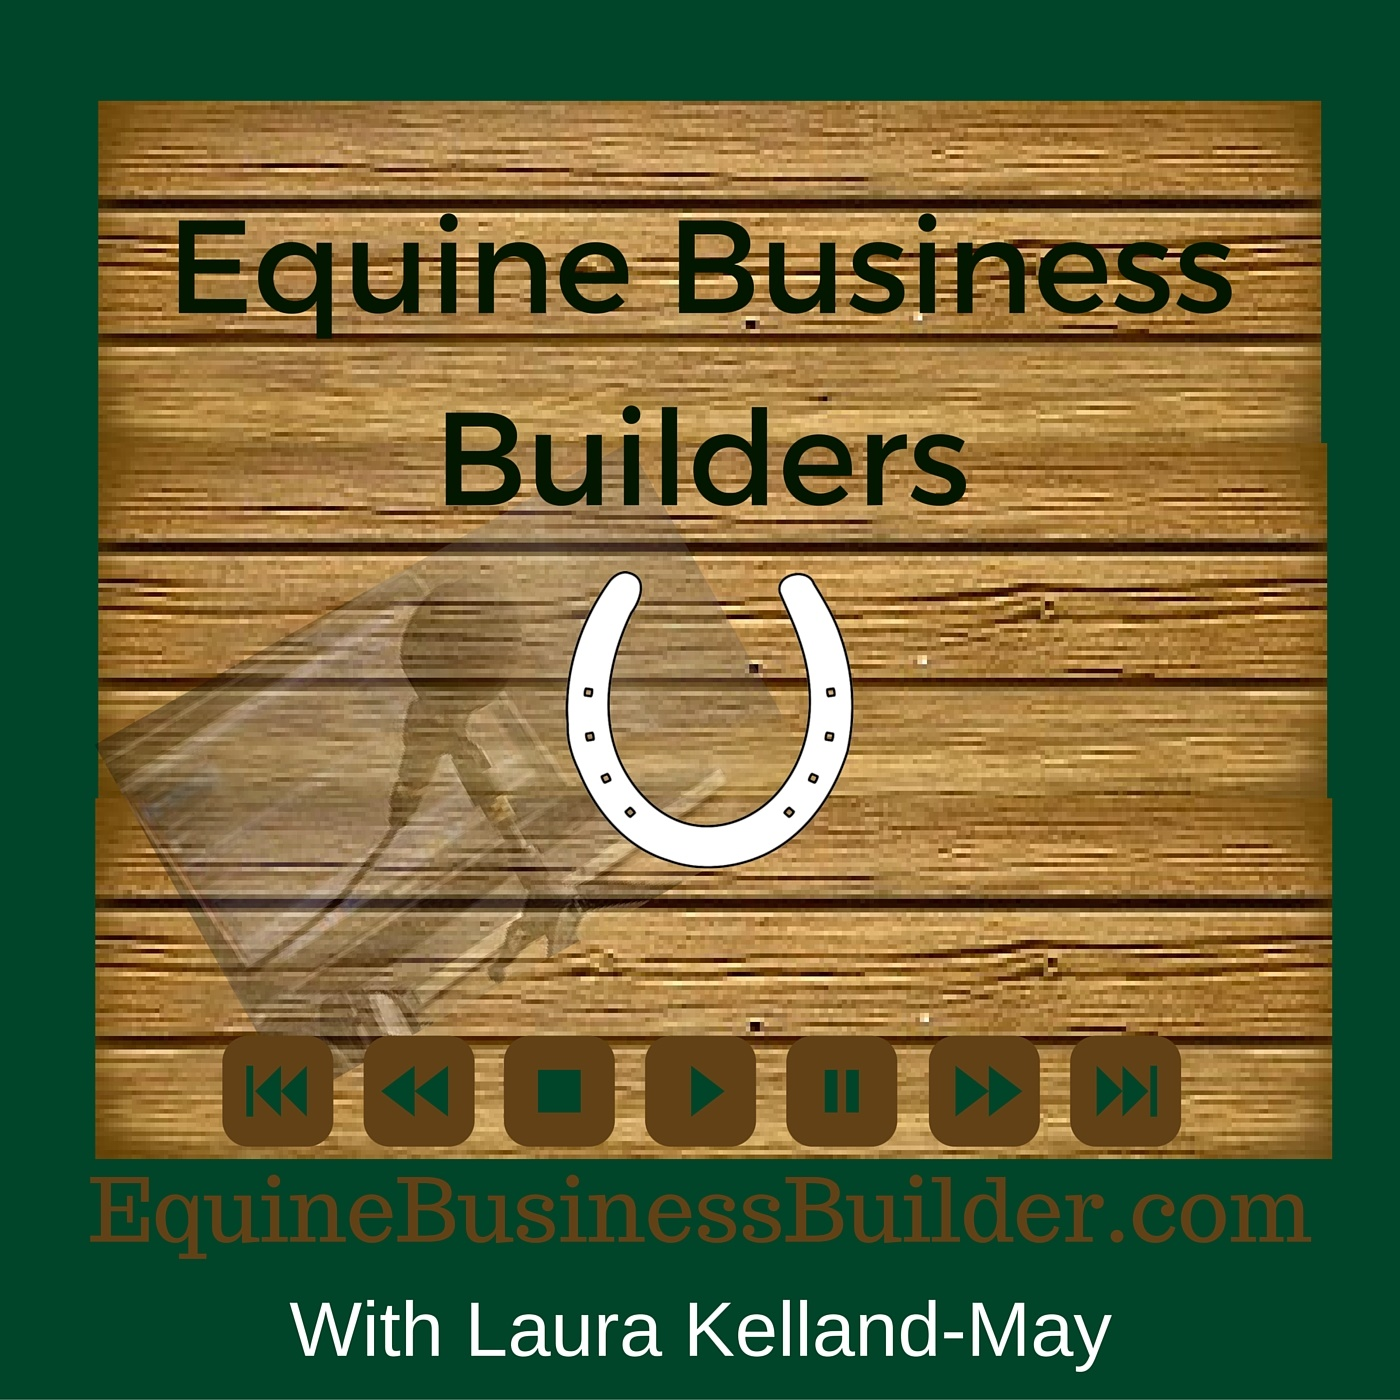 Equine Business Builders - Common Sense Business Solutions for Equestrian Entrepreneurs